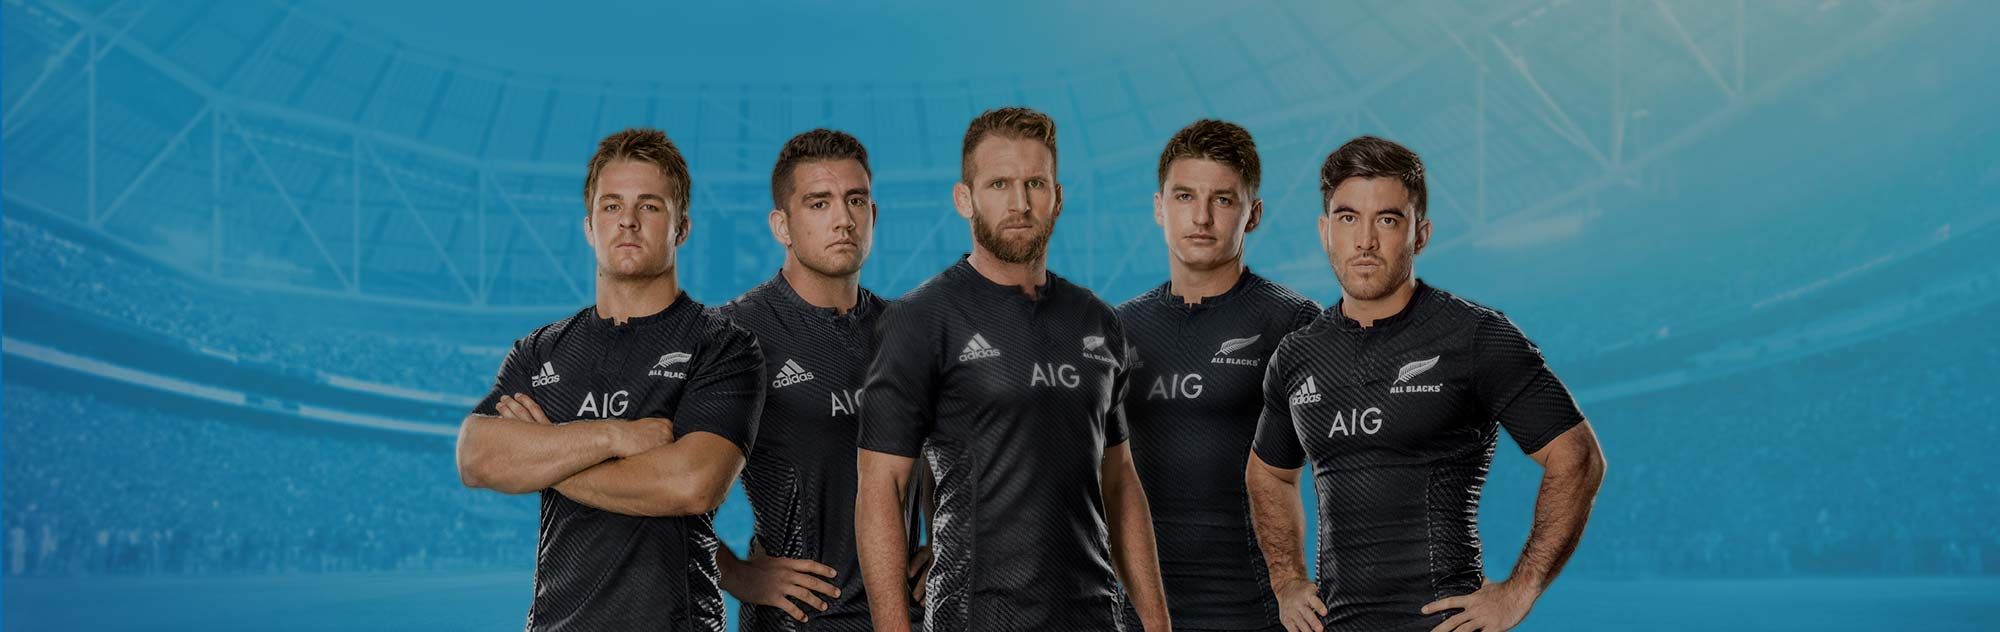 AIG All Blacks Merchandise Competition